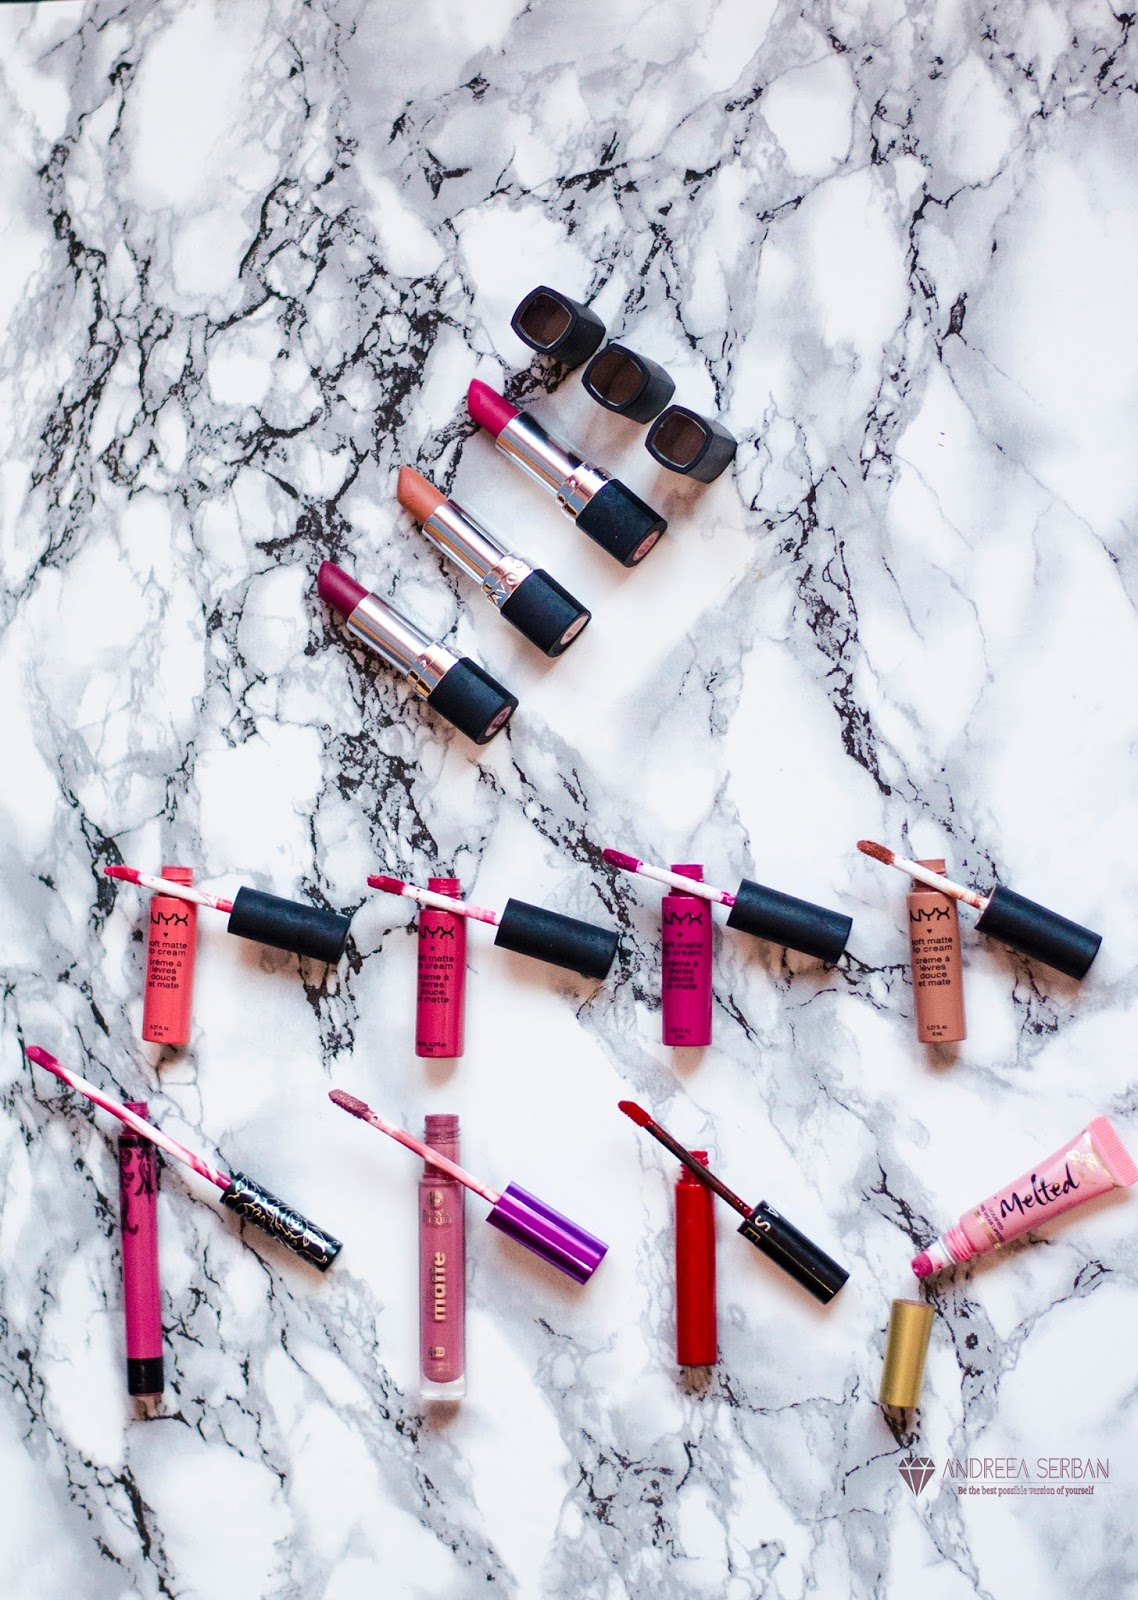 Which Matte Lipstick Is The Best?